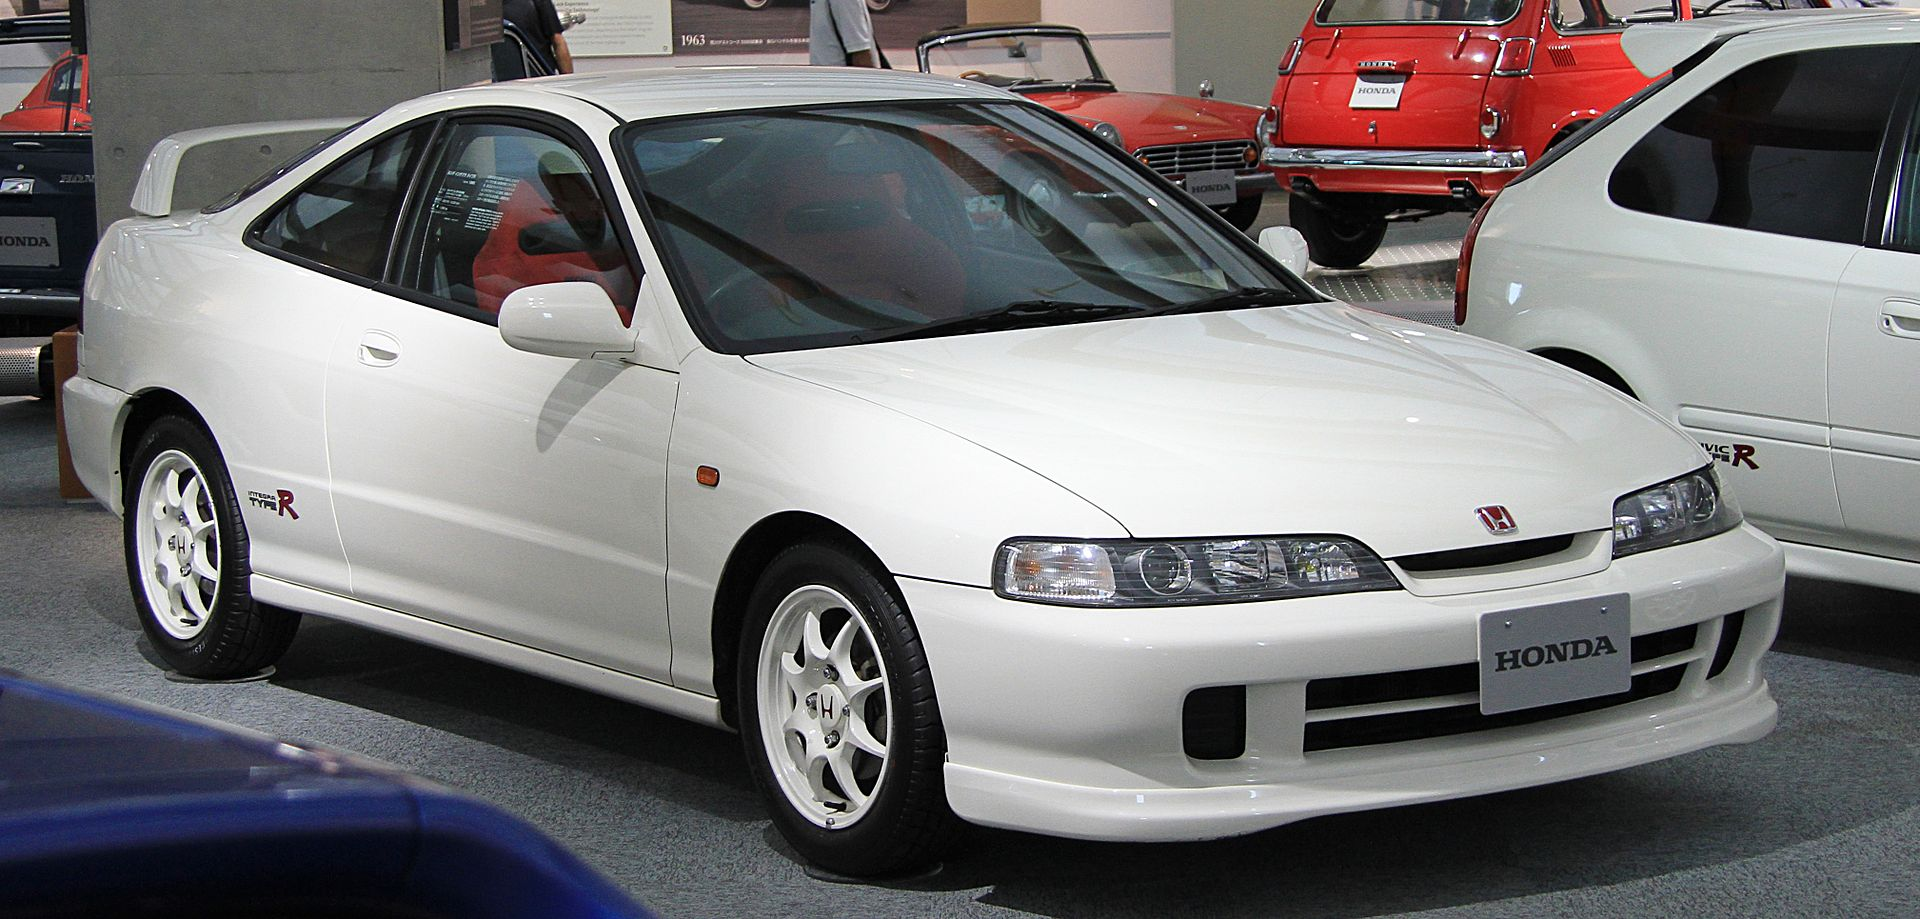 Honda Integra Type R. Legal for the US in 2020